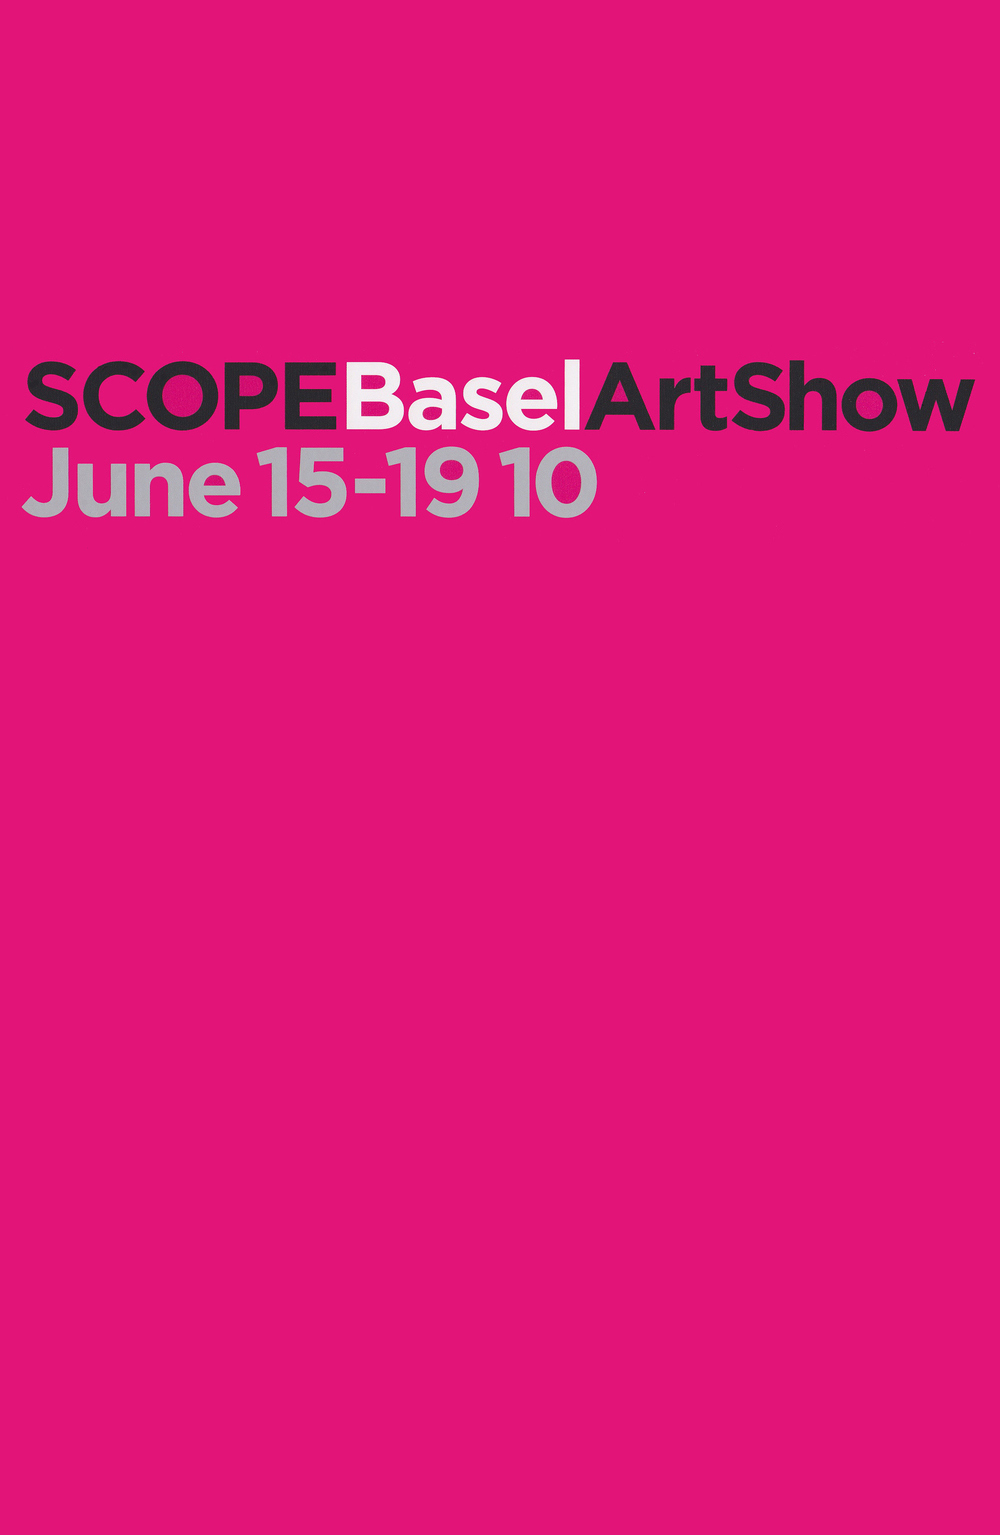 Scope Art Basel